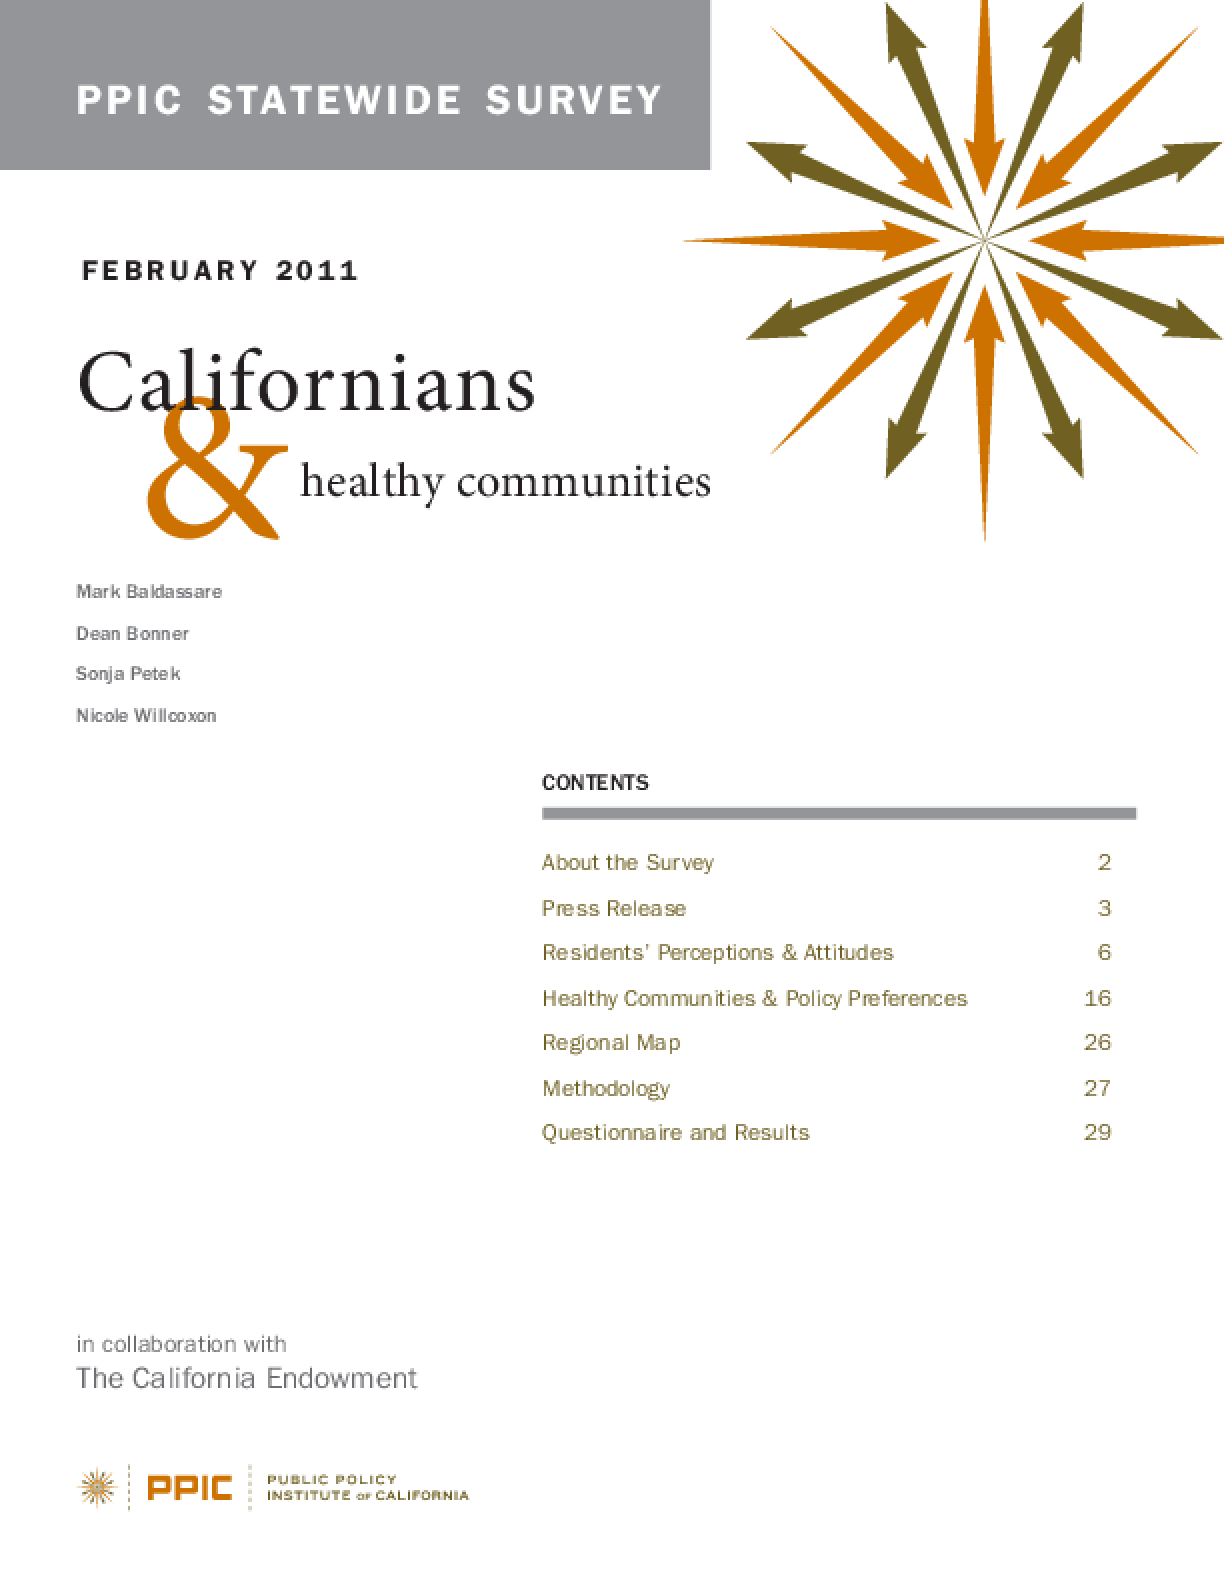 PPIC Statewide Survey: Californians and Healthy Communities